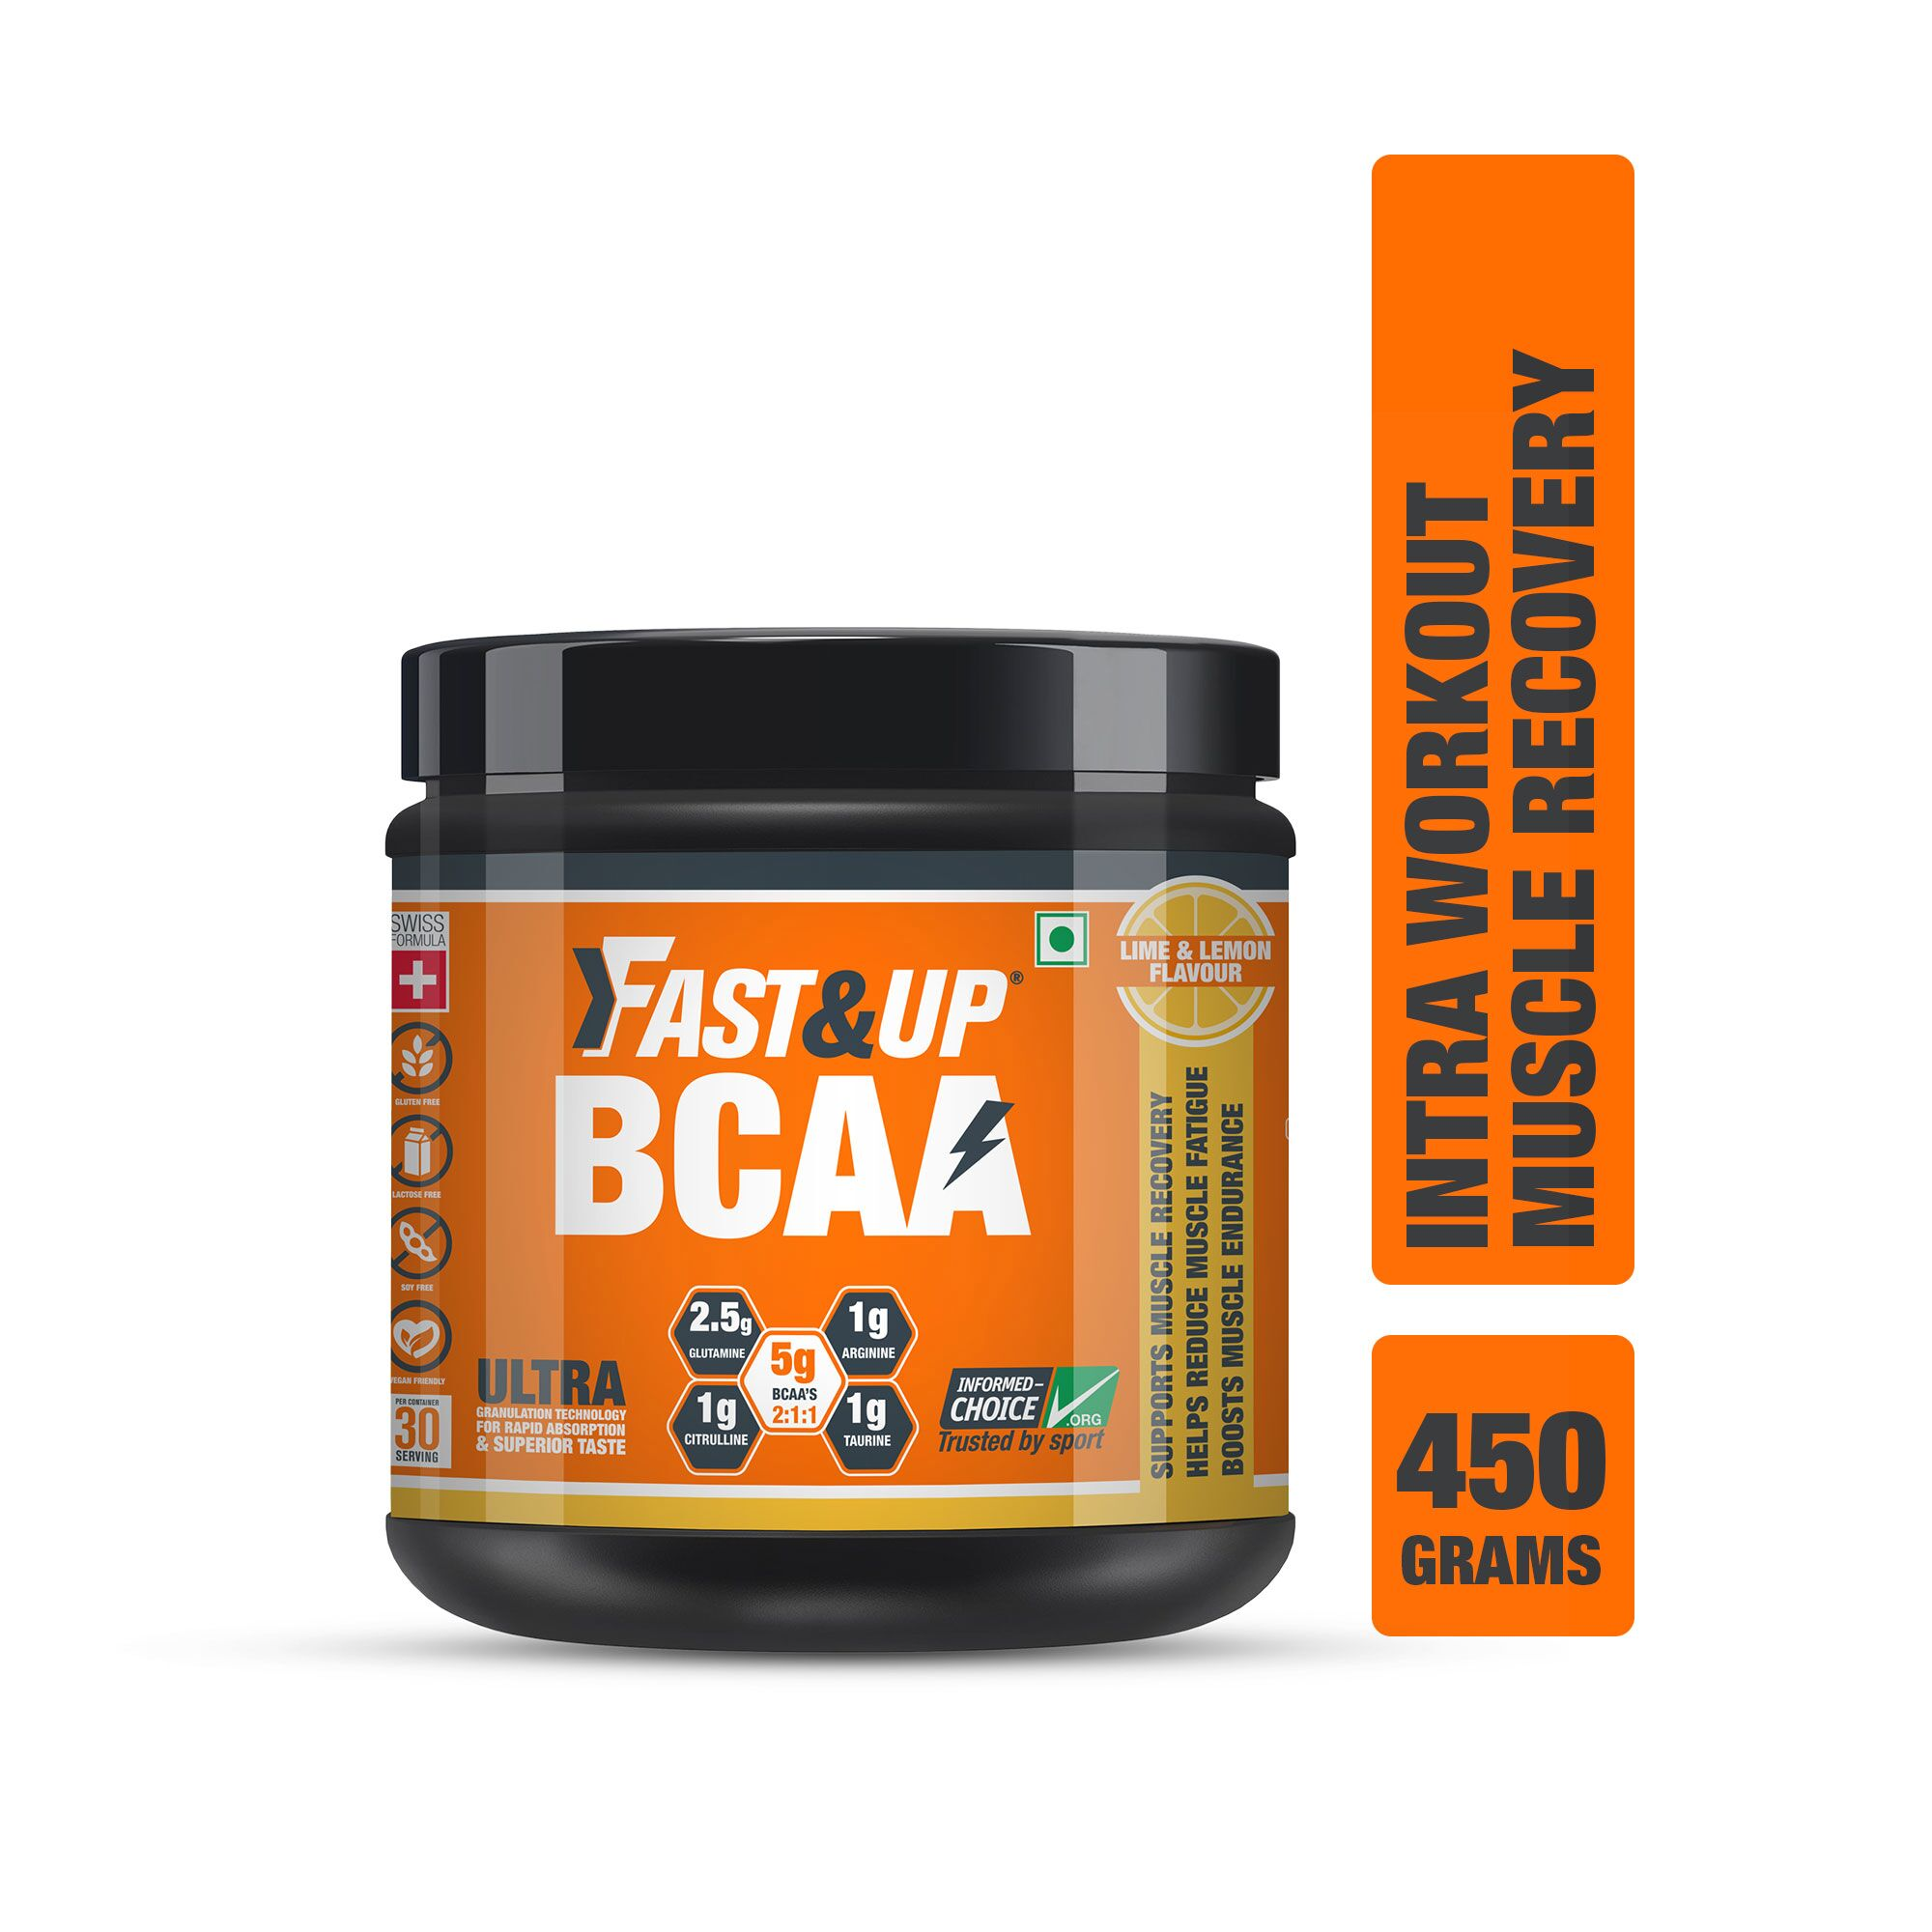 Fast&Up BCAA 2:1:1 For Pre/Intra/Post Workout With Arginine, Glutamine And Muscle Activation Boosters - 450 Gms - Lime&Lemon Flavour